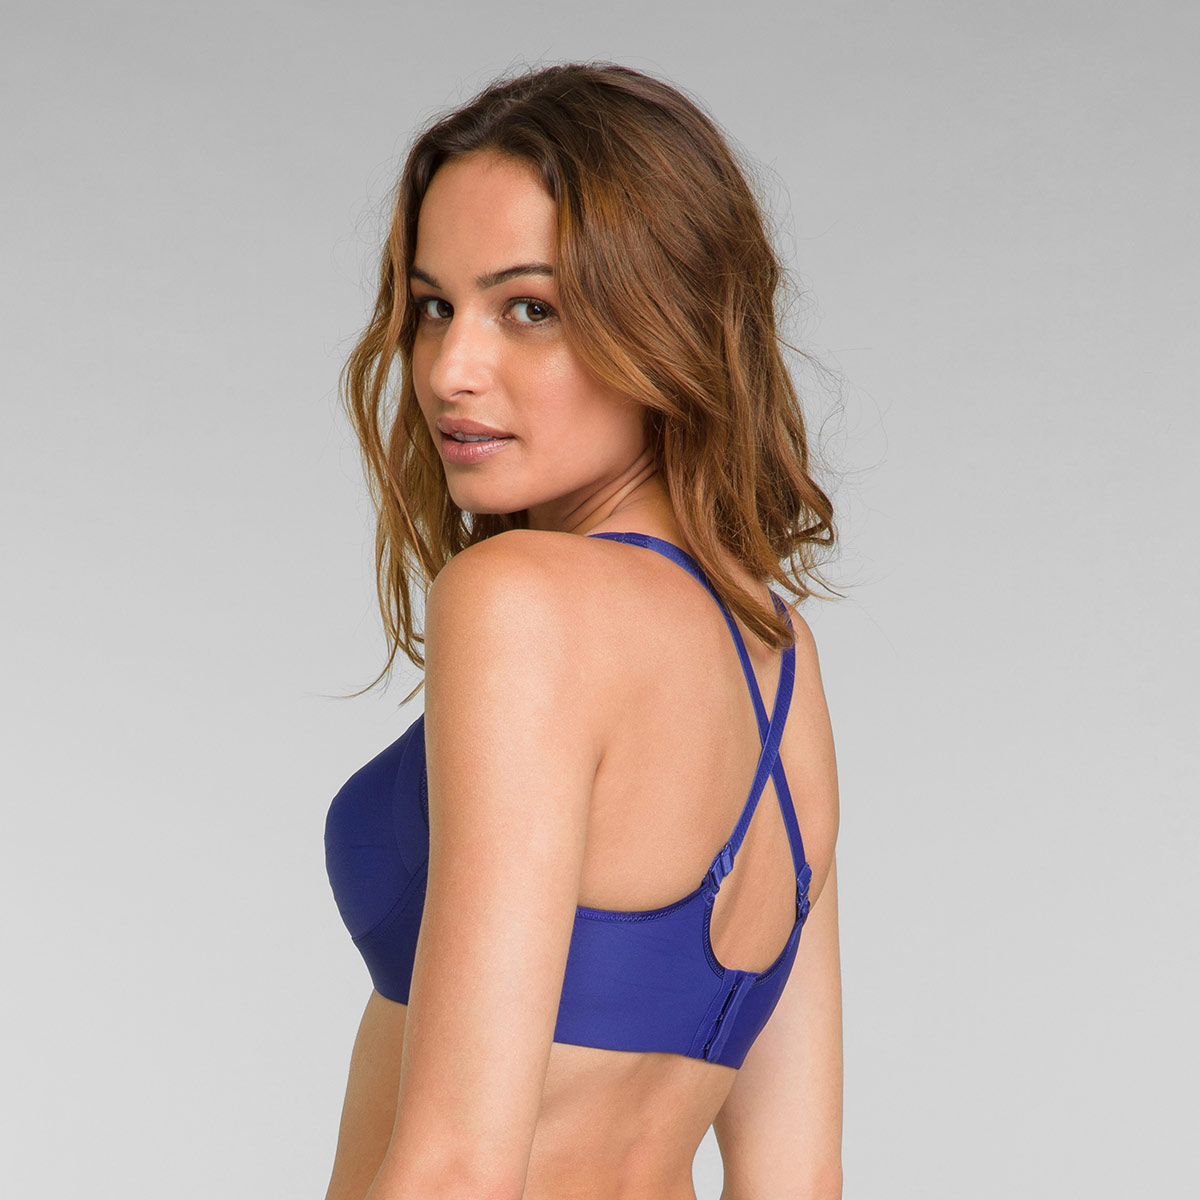 Reggiseno senza ferretto blu intenso Feel Good Support , , PLAYTEX